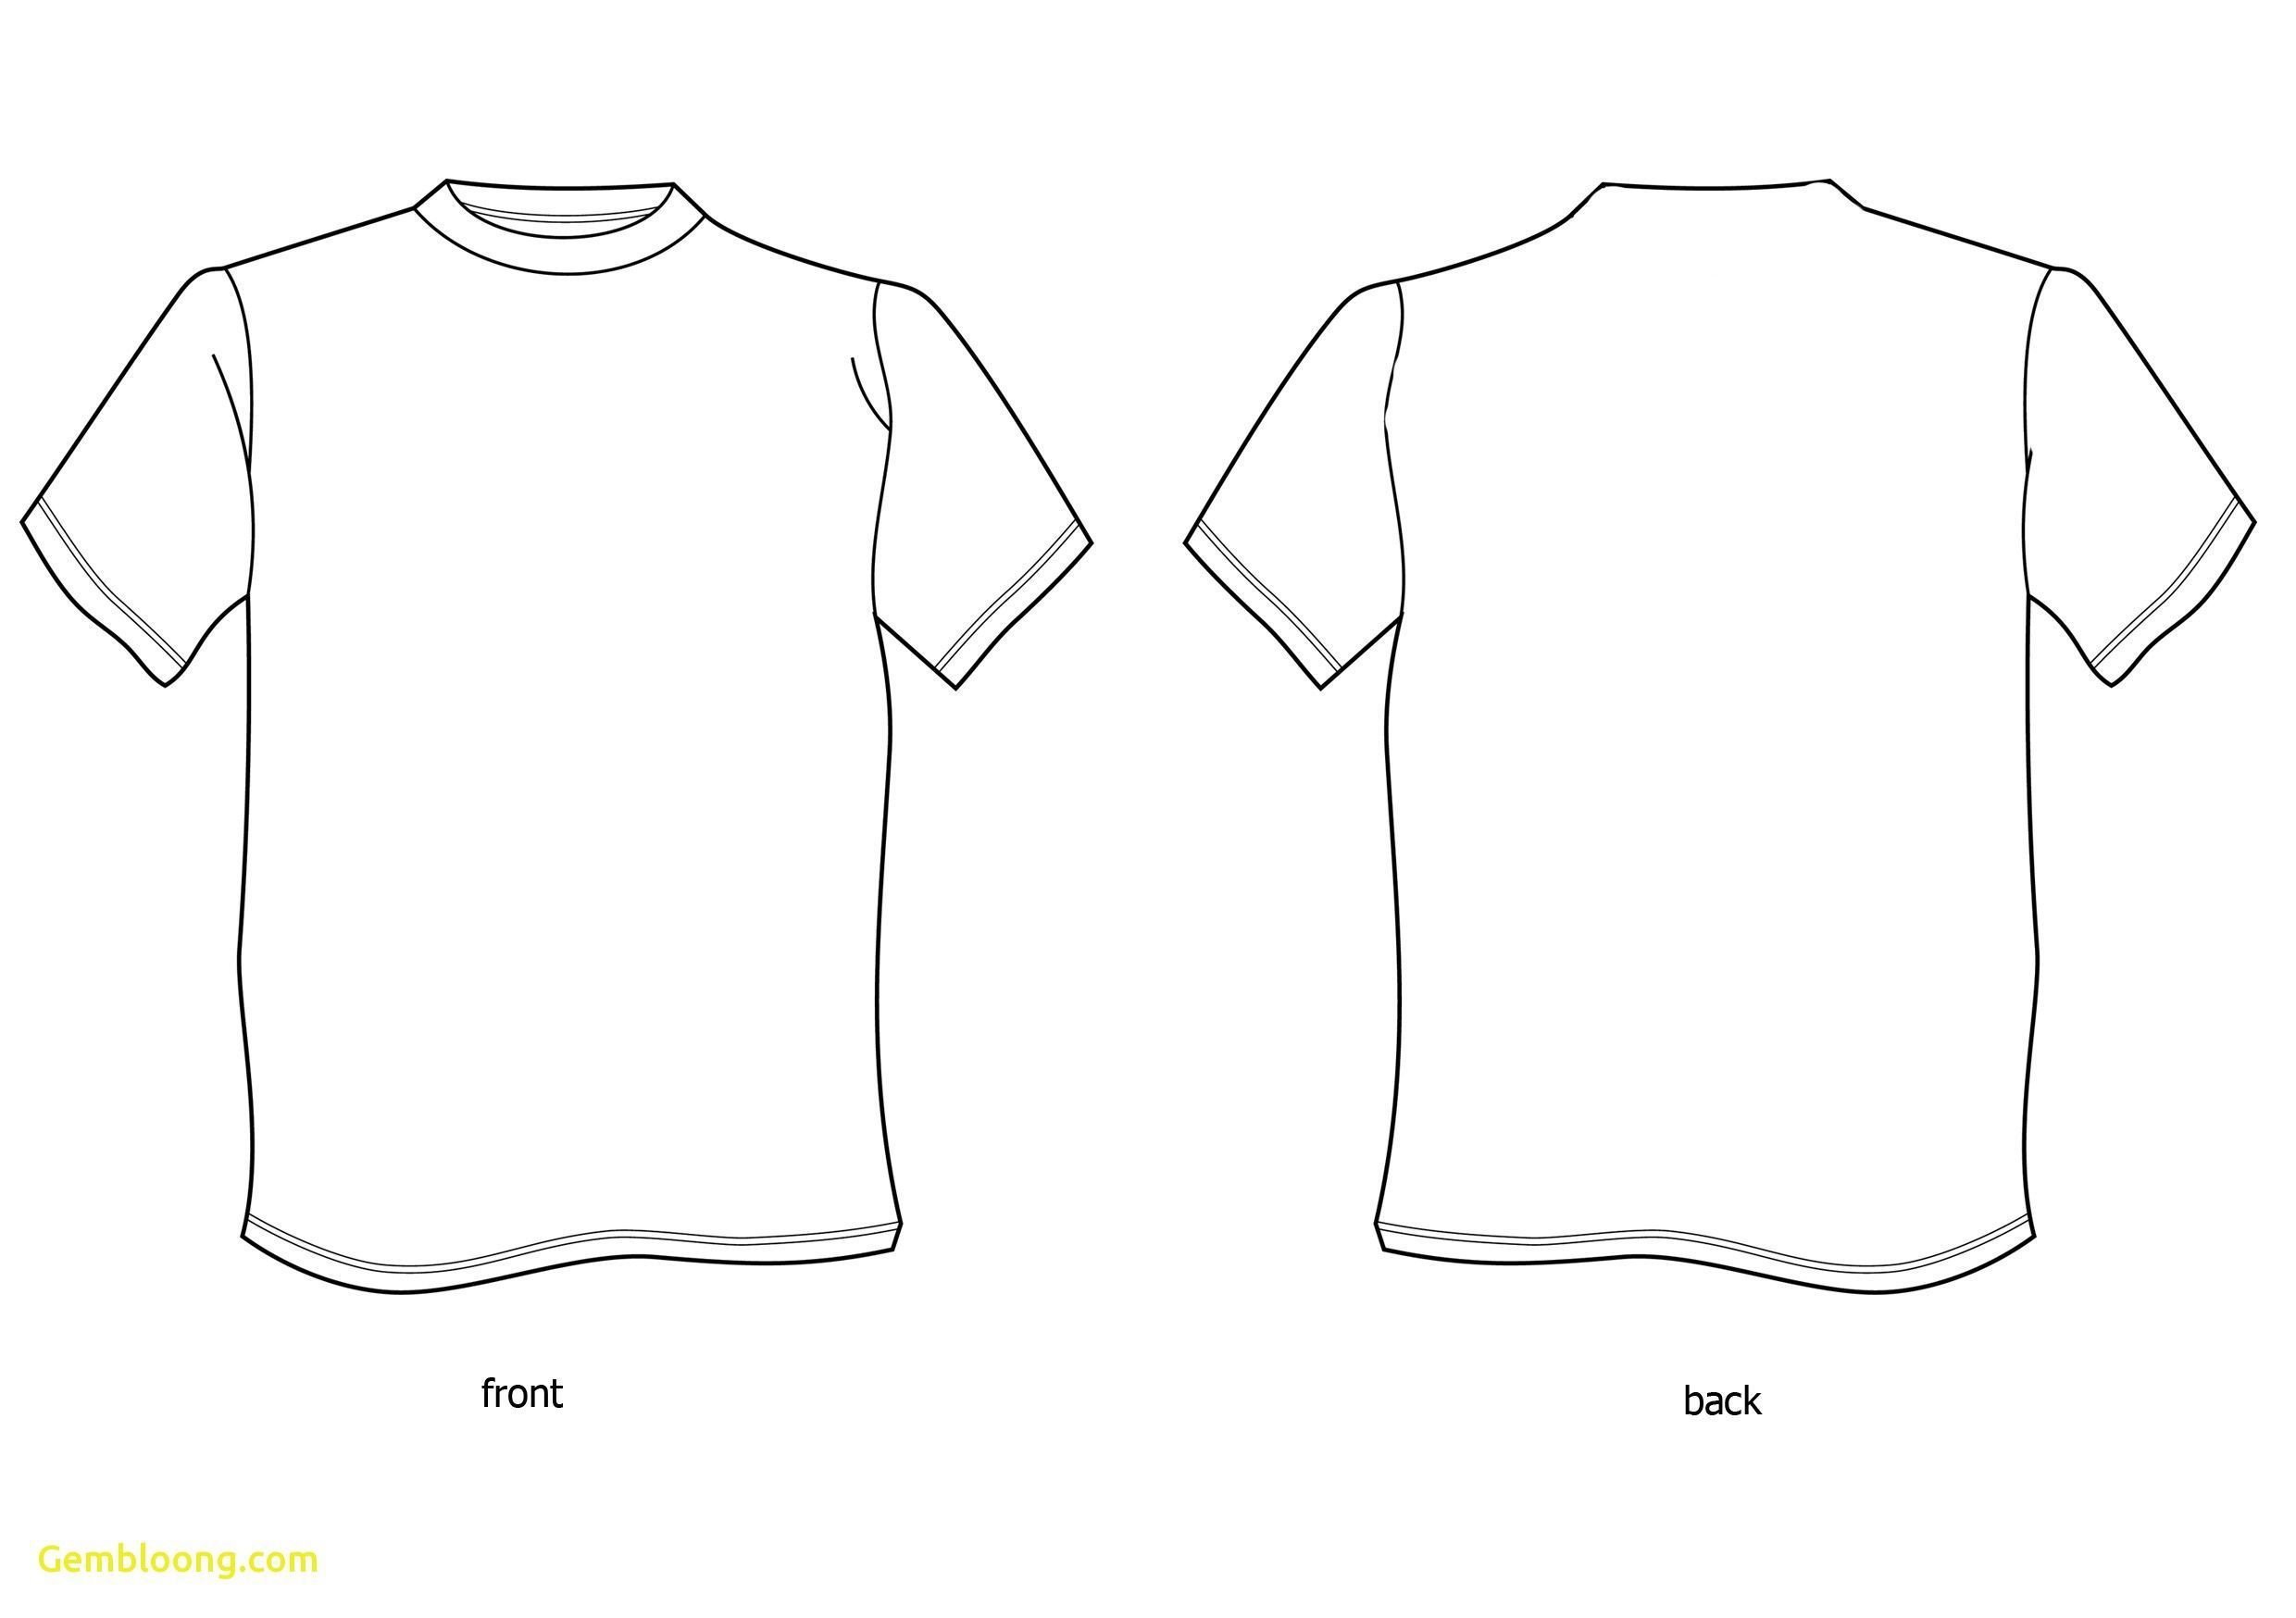 001 Beautiful Tee Shirt Design Template  Templates T Illustrator Free Download Polo PsdFull